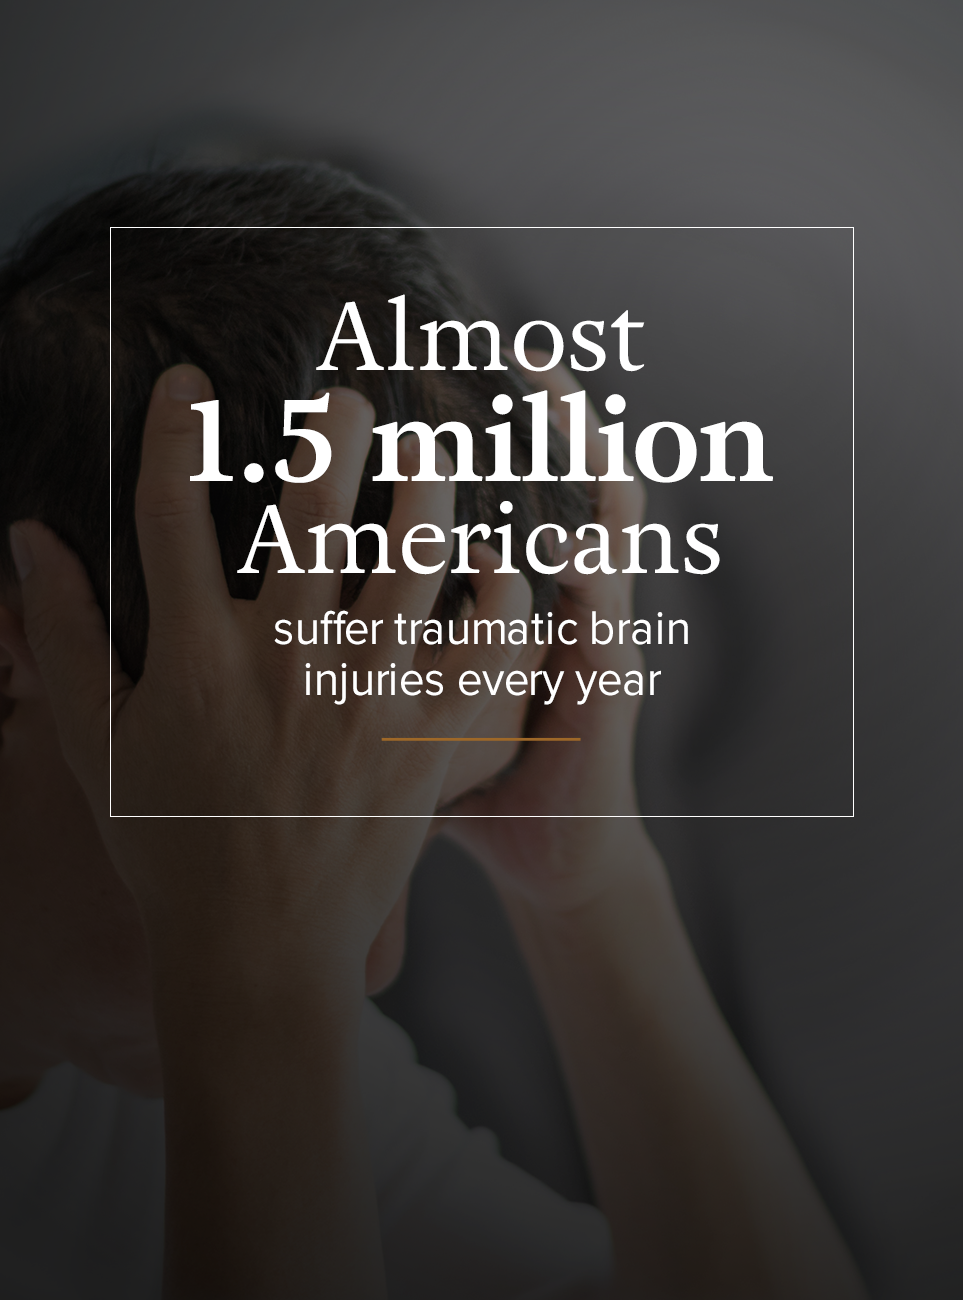 Almost 1.5 million Americans suffer traumatic brain injuries every year.